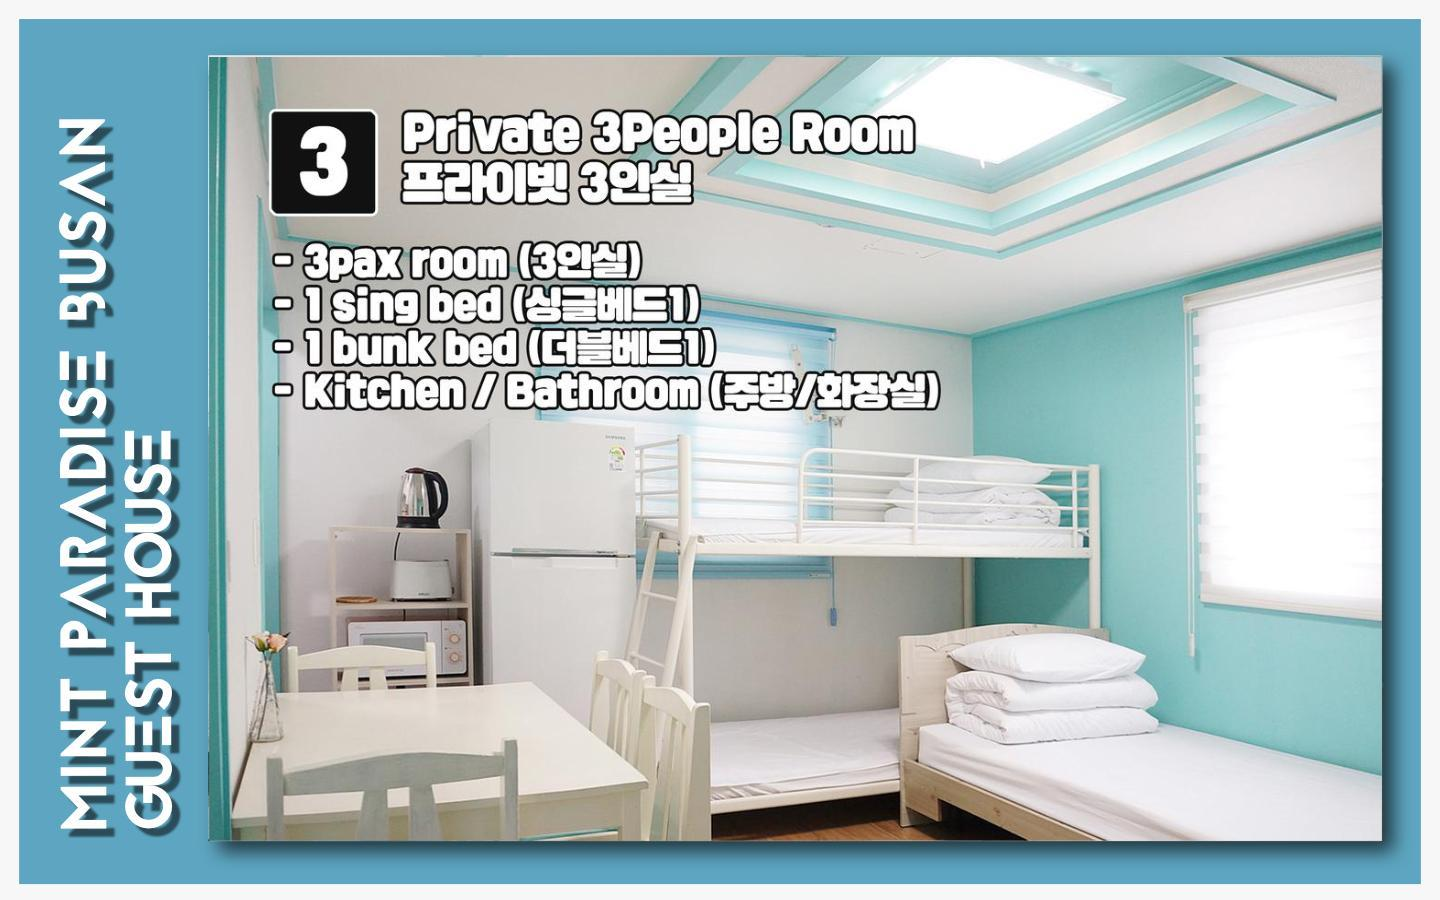 客房(4張上下舖床) (Private 4-Bunk Beds Room)